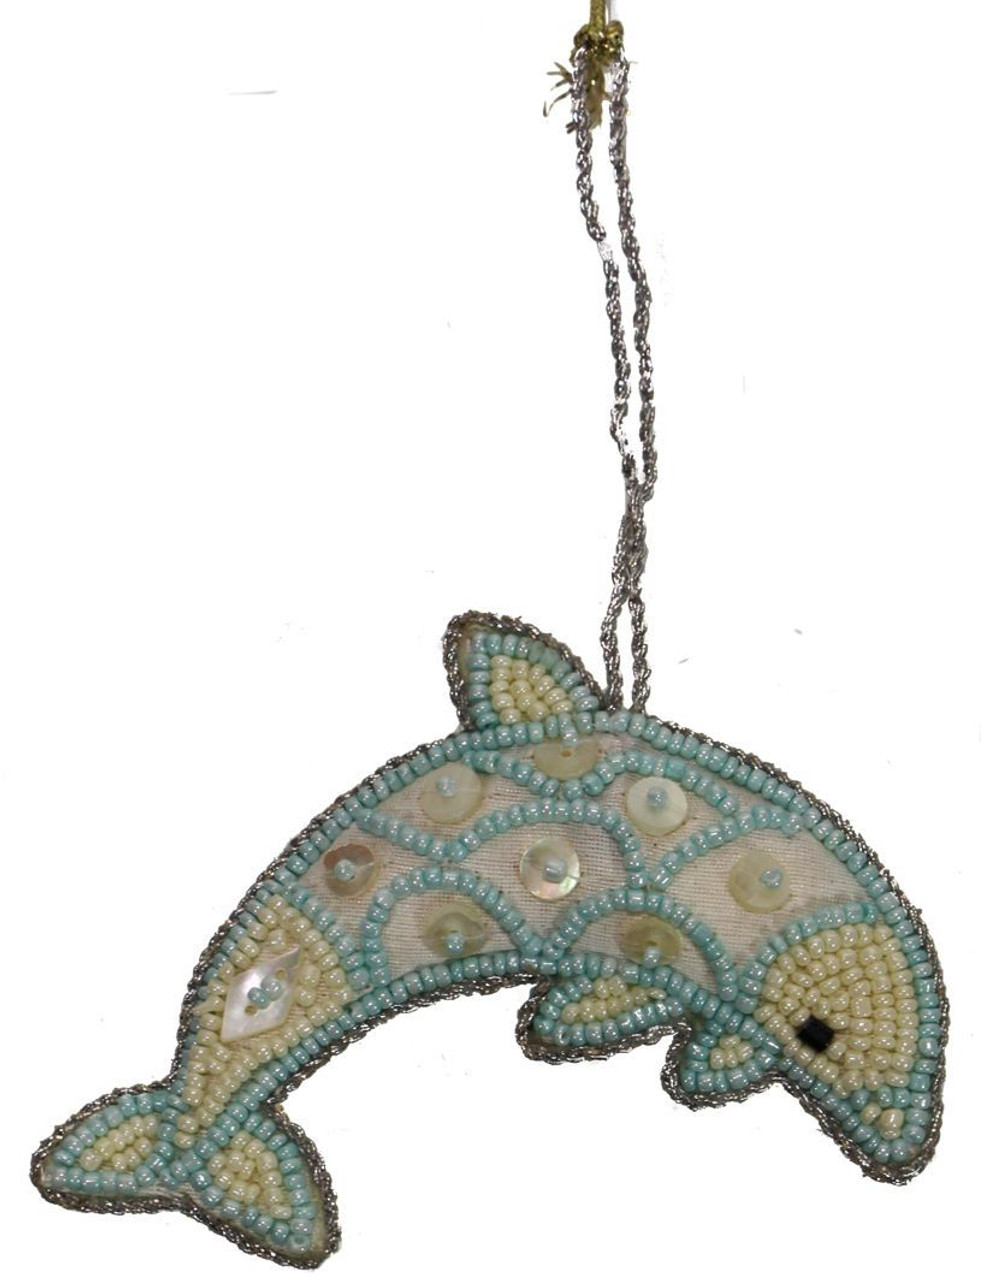 Dolphin Mother of Pearl & Beads Ornament - Cream and Blue